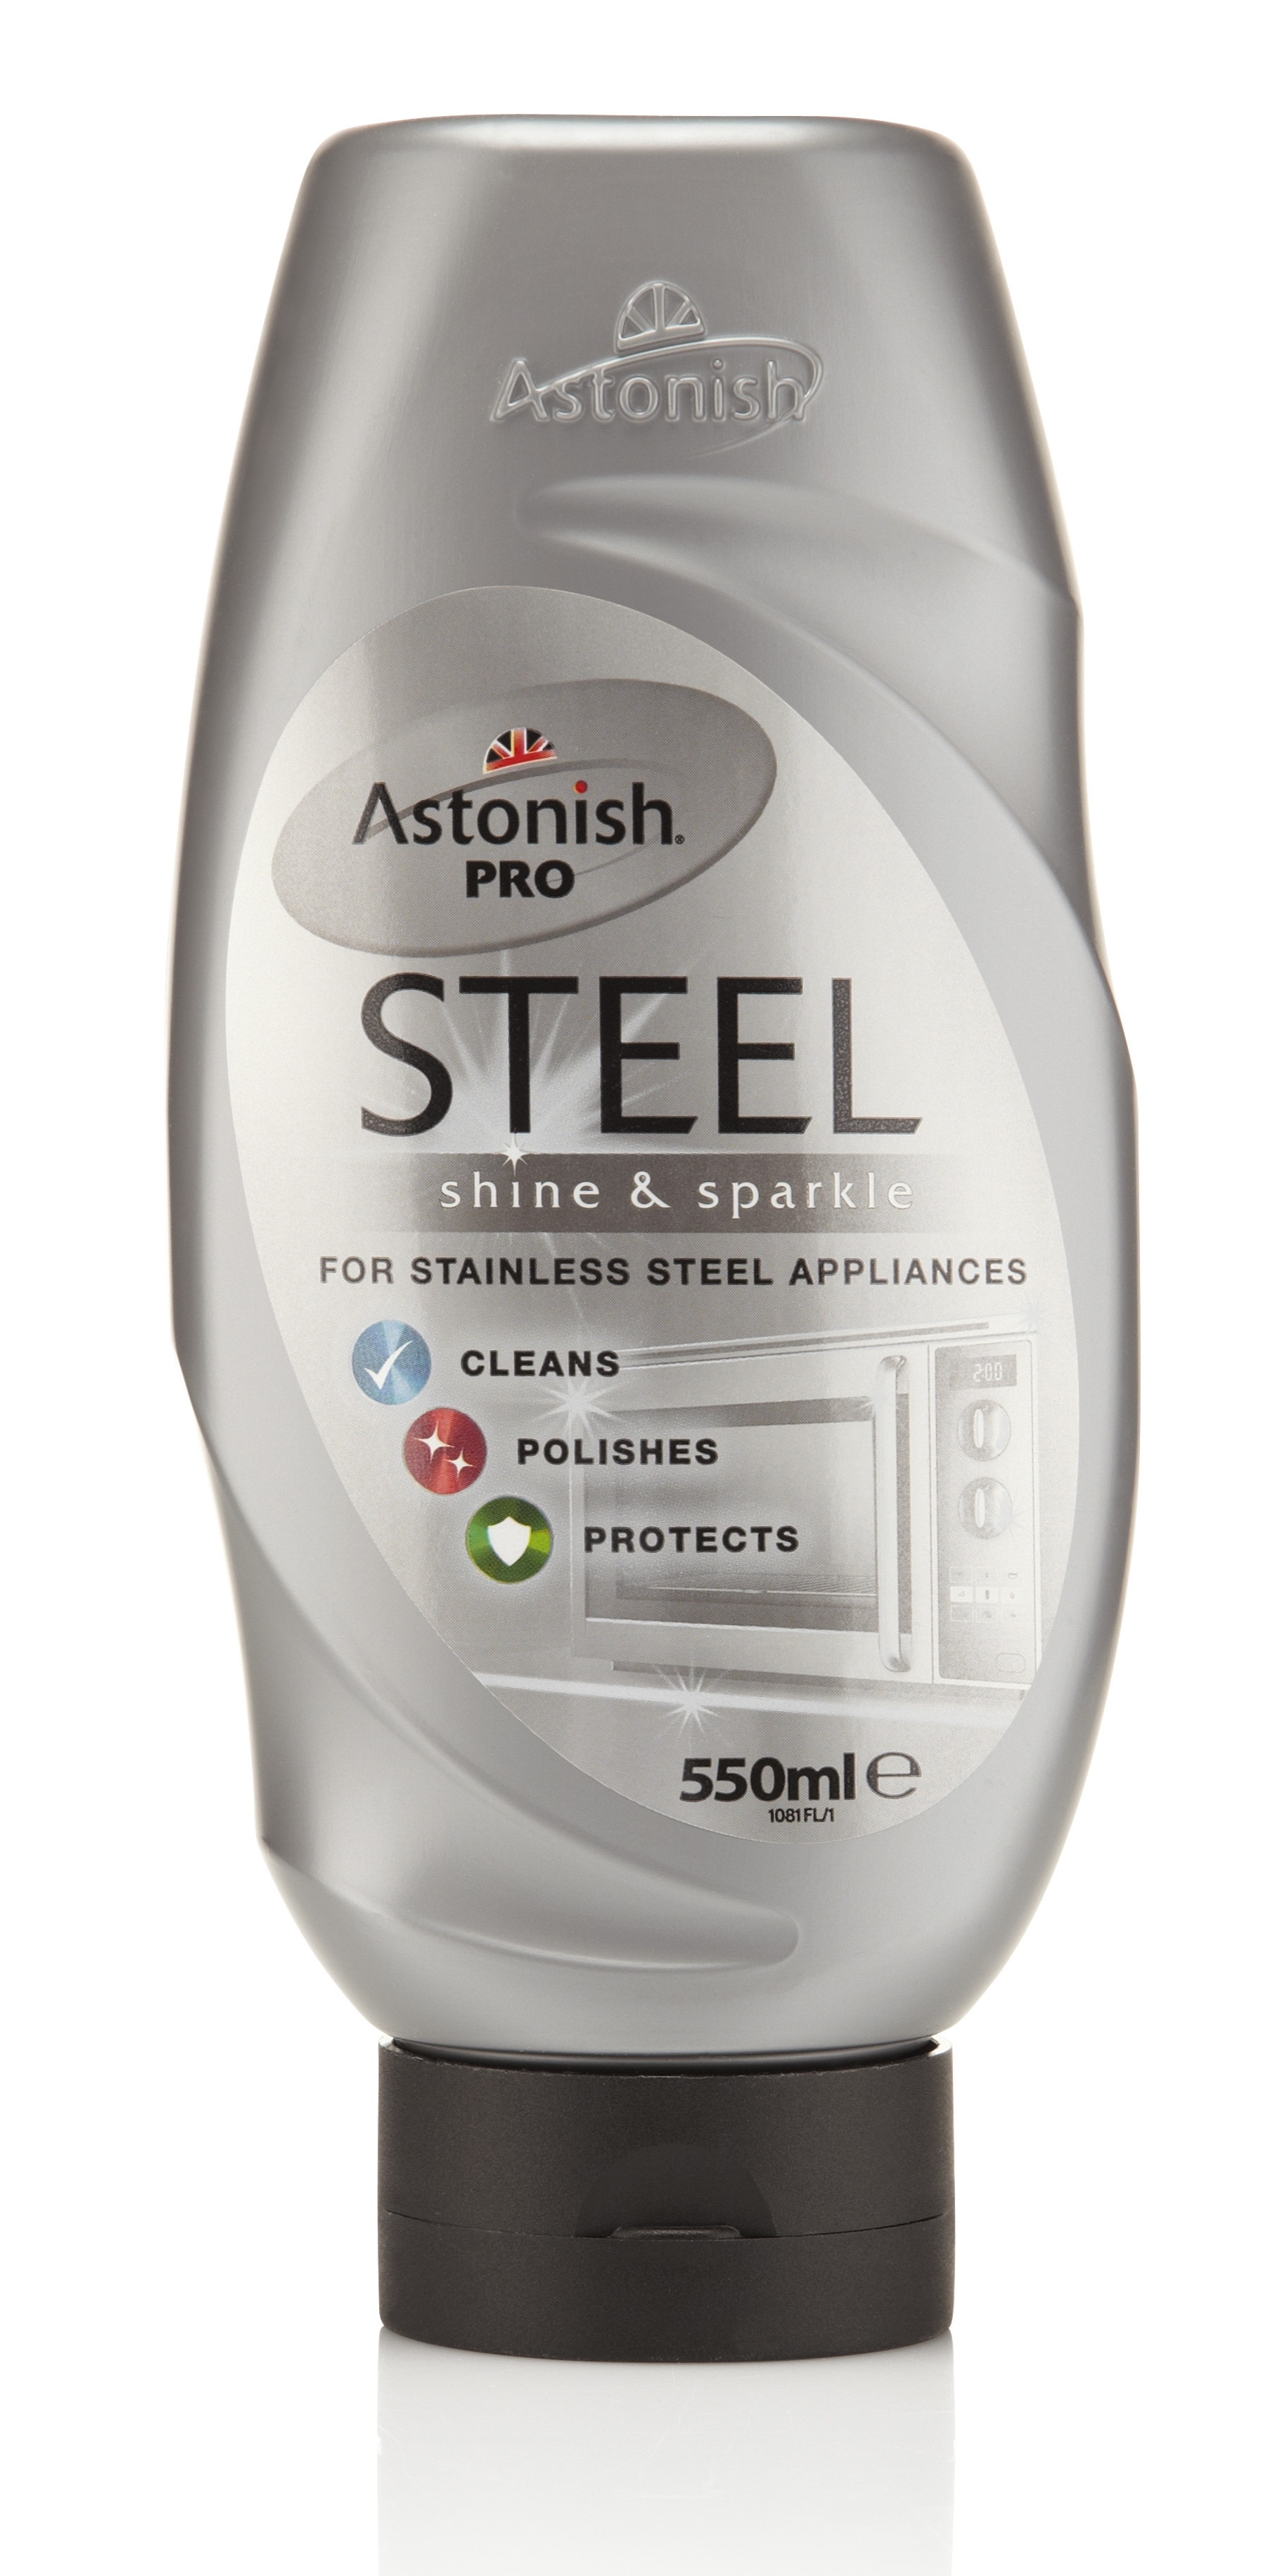 Astonish Pro Steel Shine & Sparkle 550ml (1).JPG